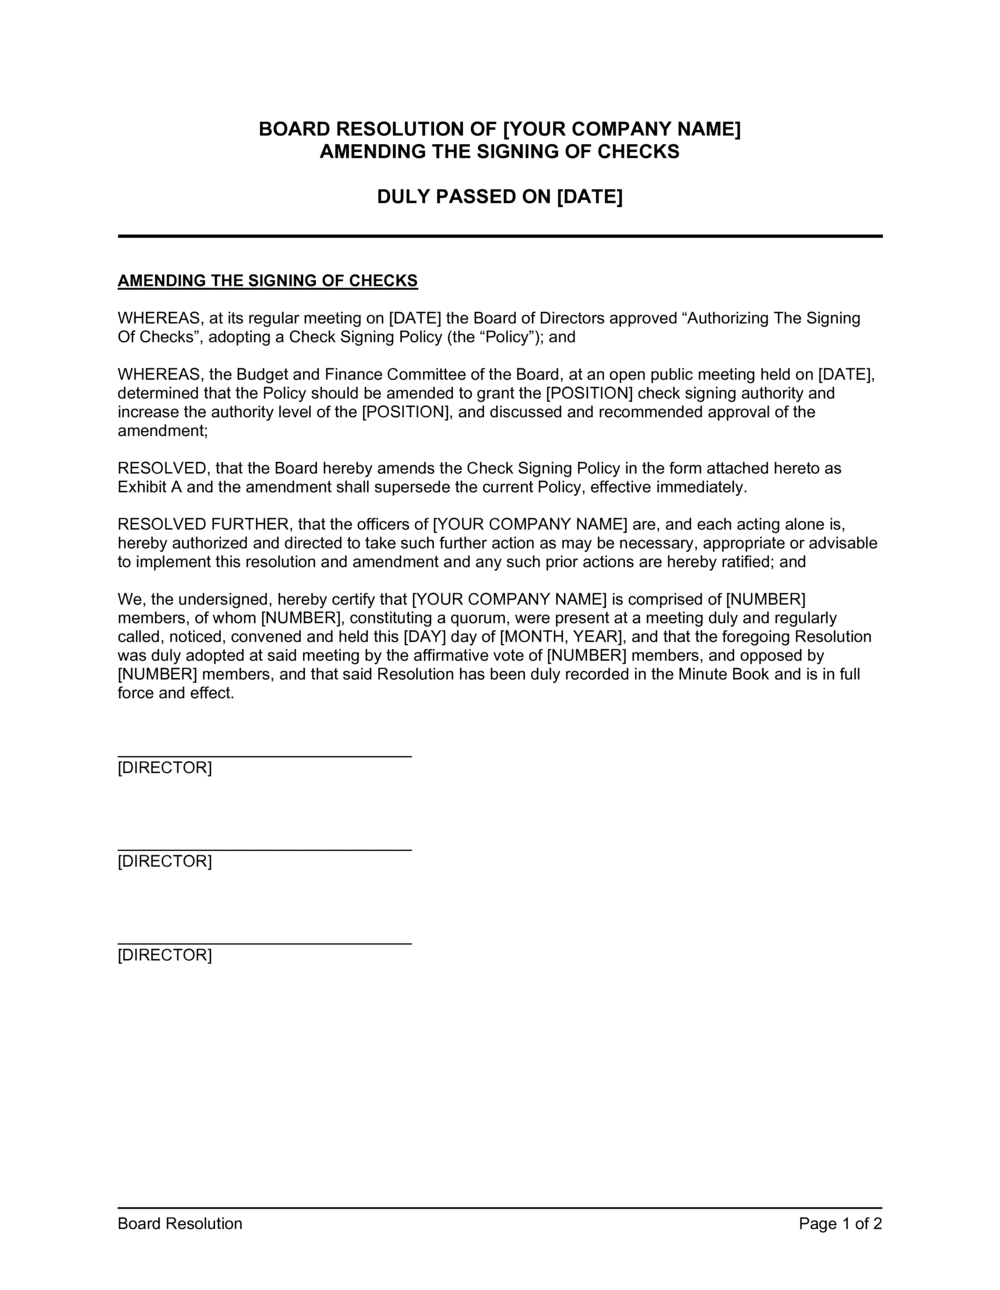 Business-in-a-Box's Board Resolution Amending the Signing of Checks Template